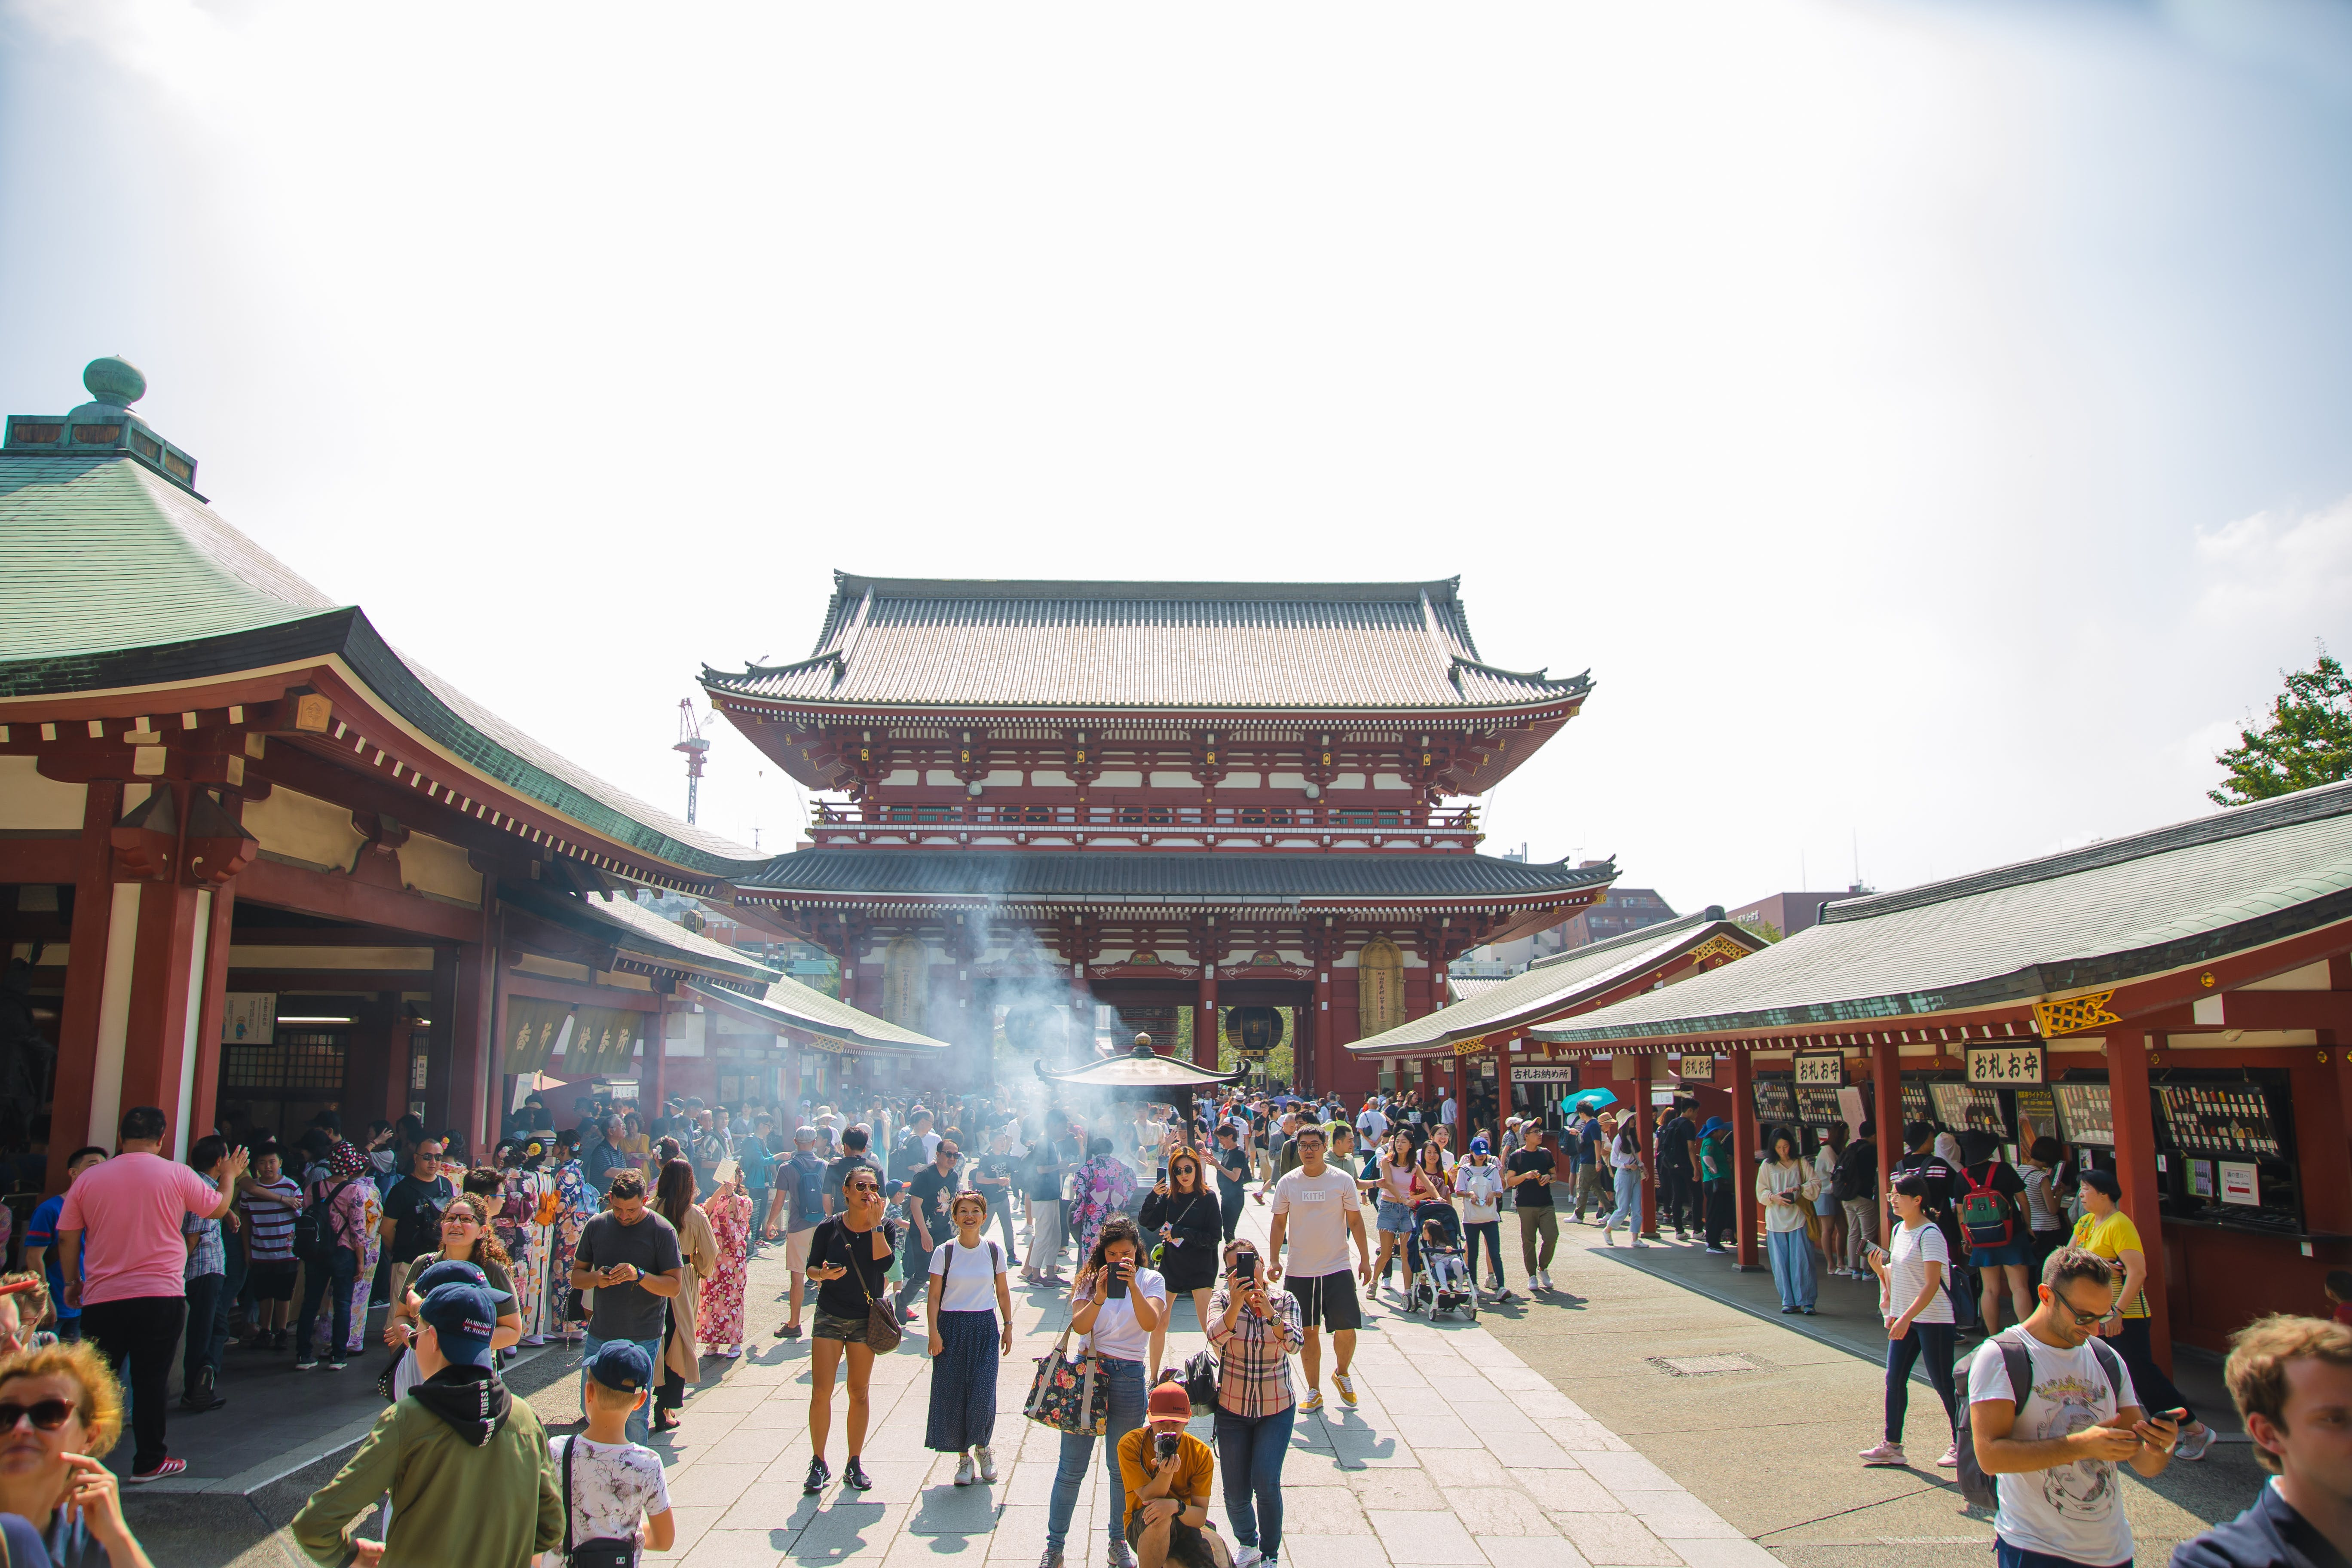 Unrecognizable tourists walking near old Buddhist temple in city